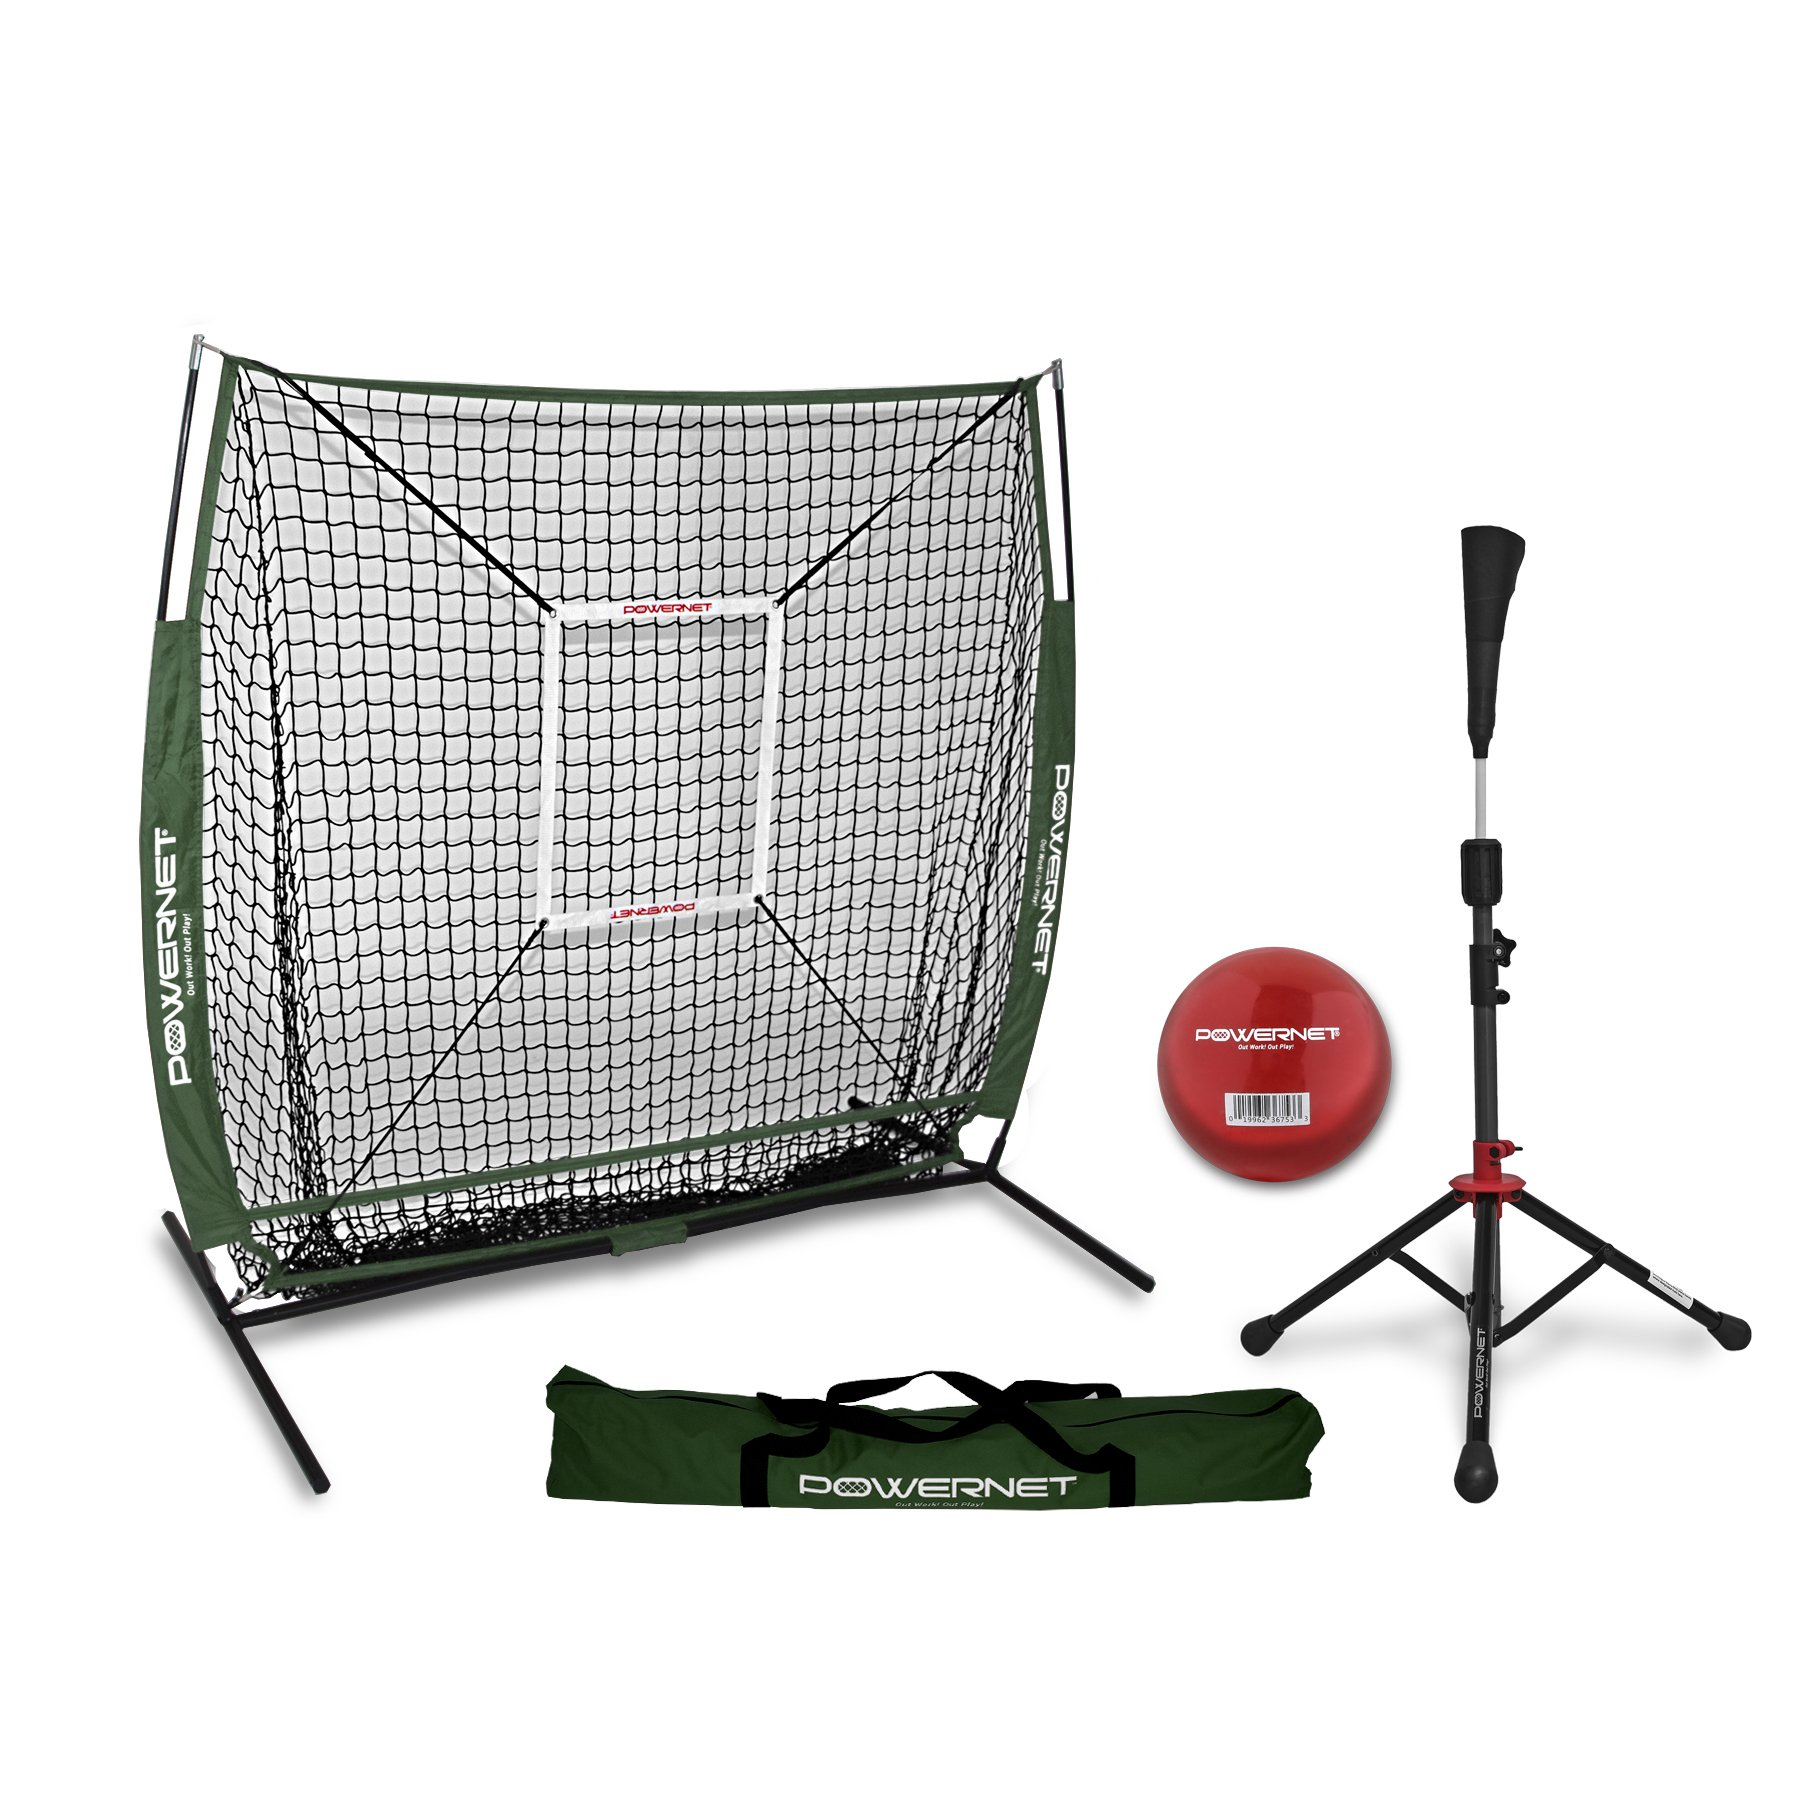 PowerNet 5x5 Practice Net + Deluxe Tee + Strike Zone + Weighted Training Ball Bundle (Green) | Baseball Softball Pitching Batting Coaching Pack | Work on Pitch Accuracy | Build Plate Confidence